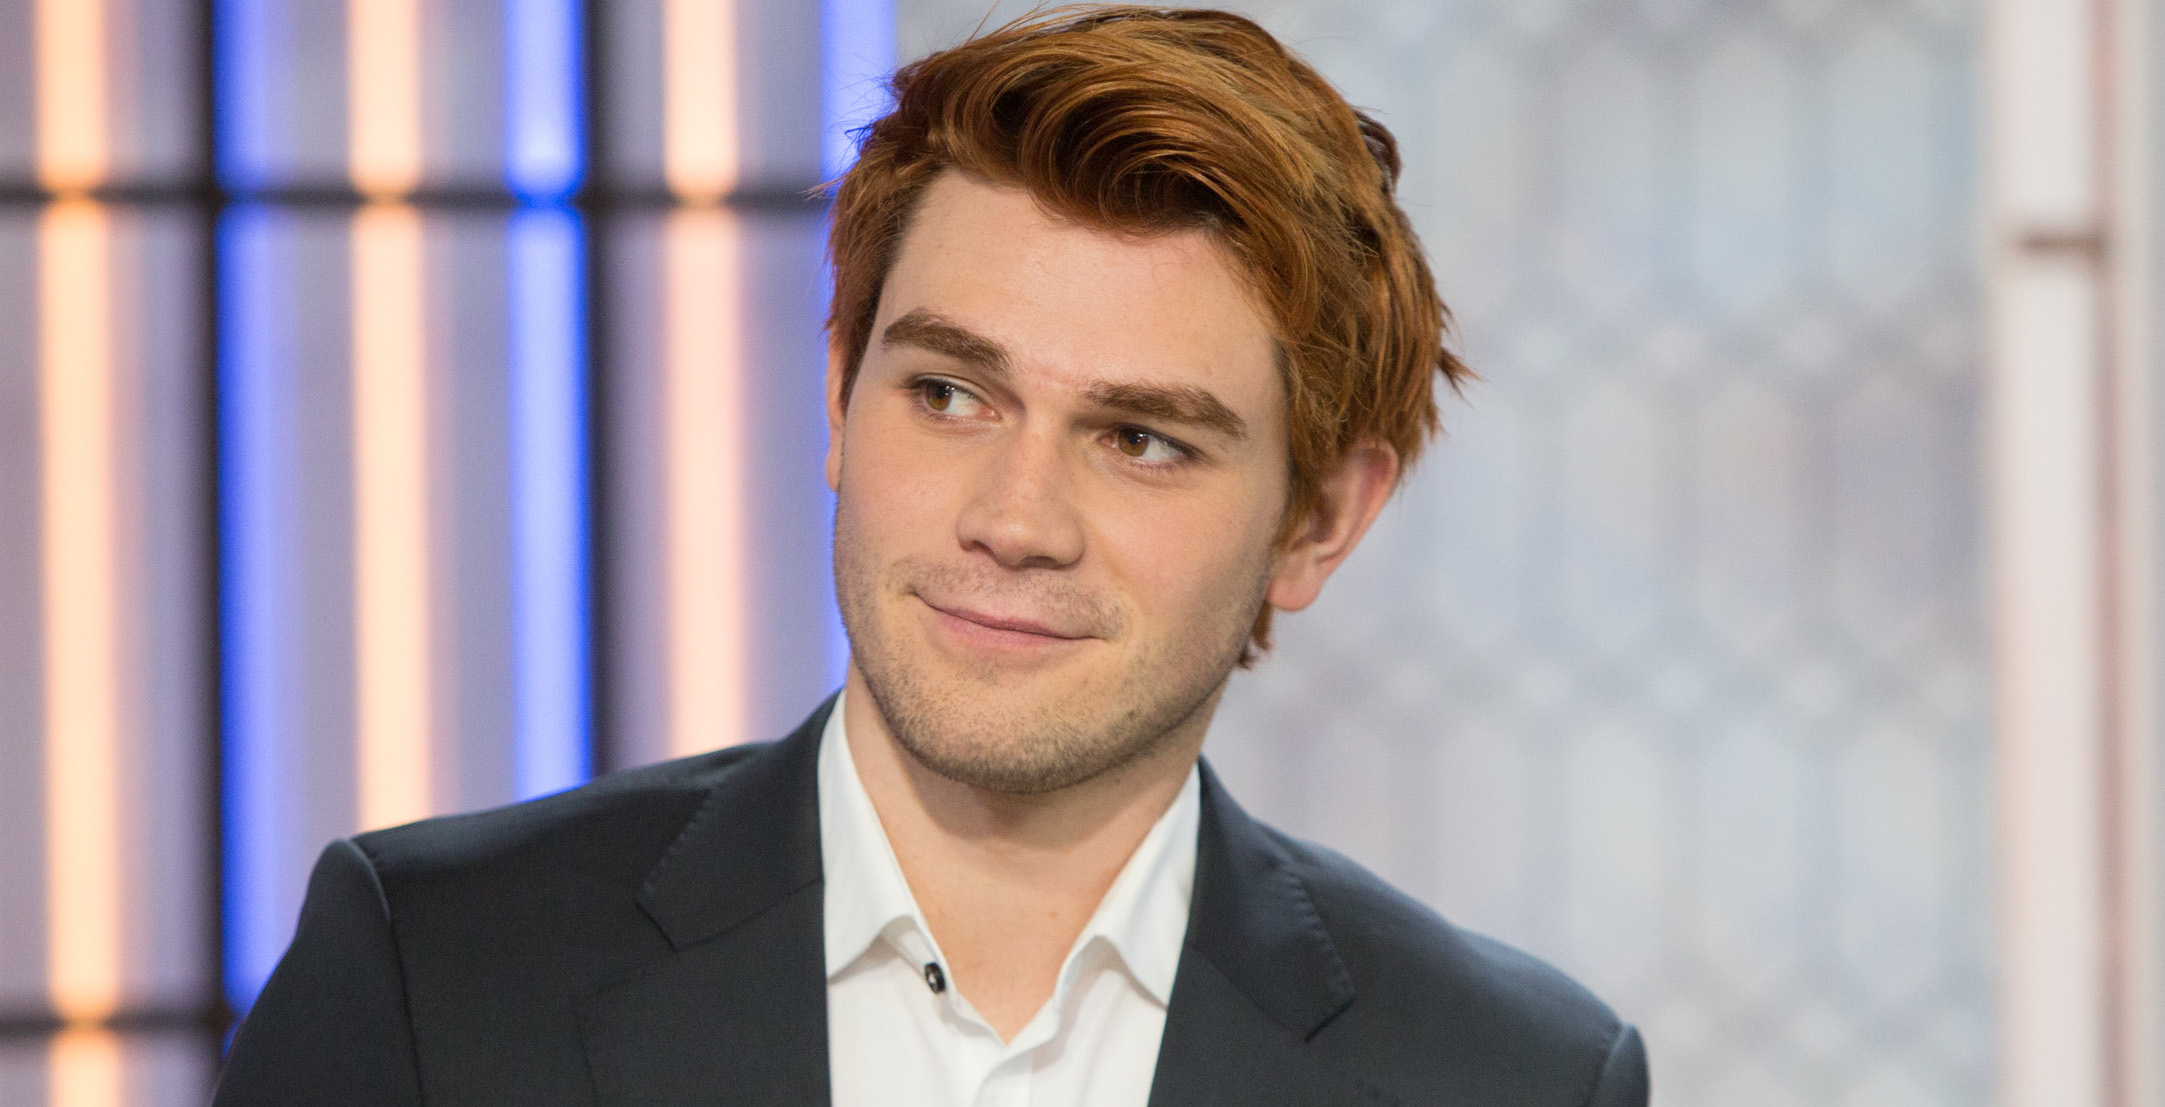 KJ Apa Age, Who Hes With Romantically & His Natural Hair